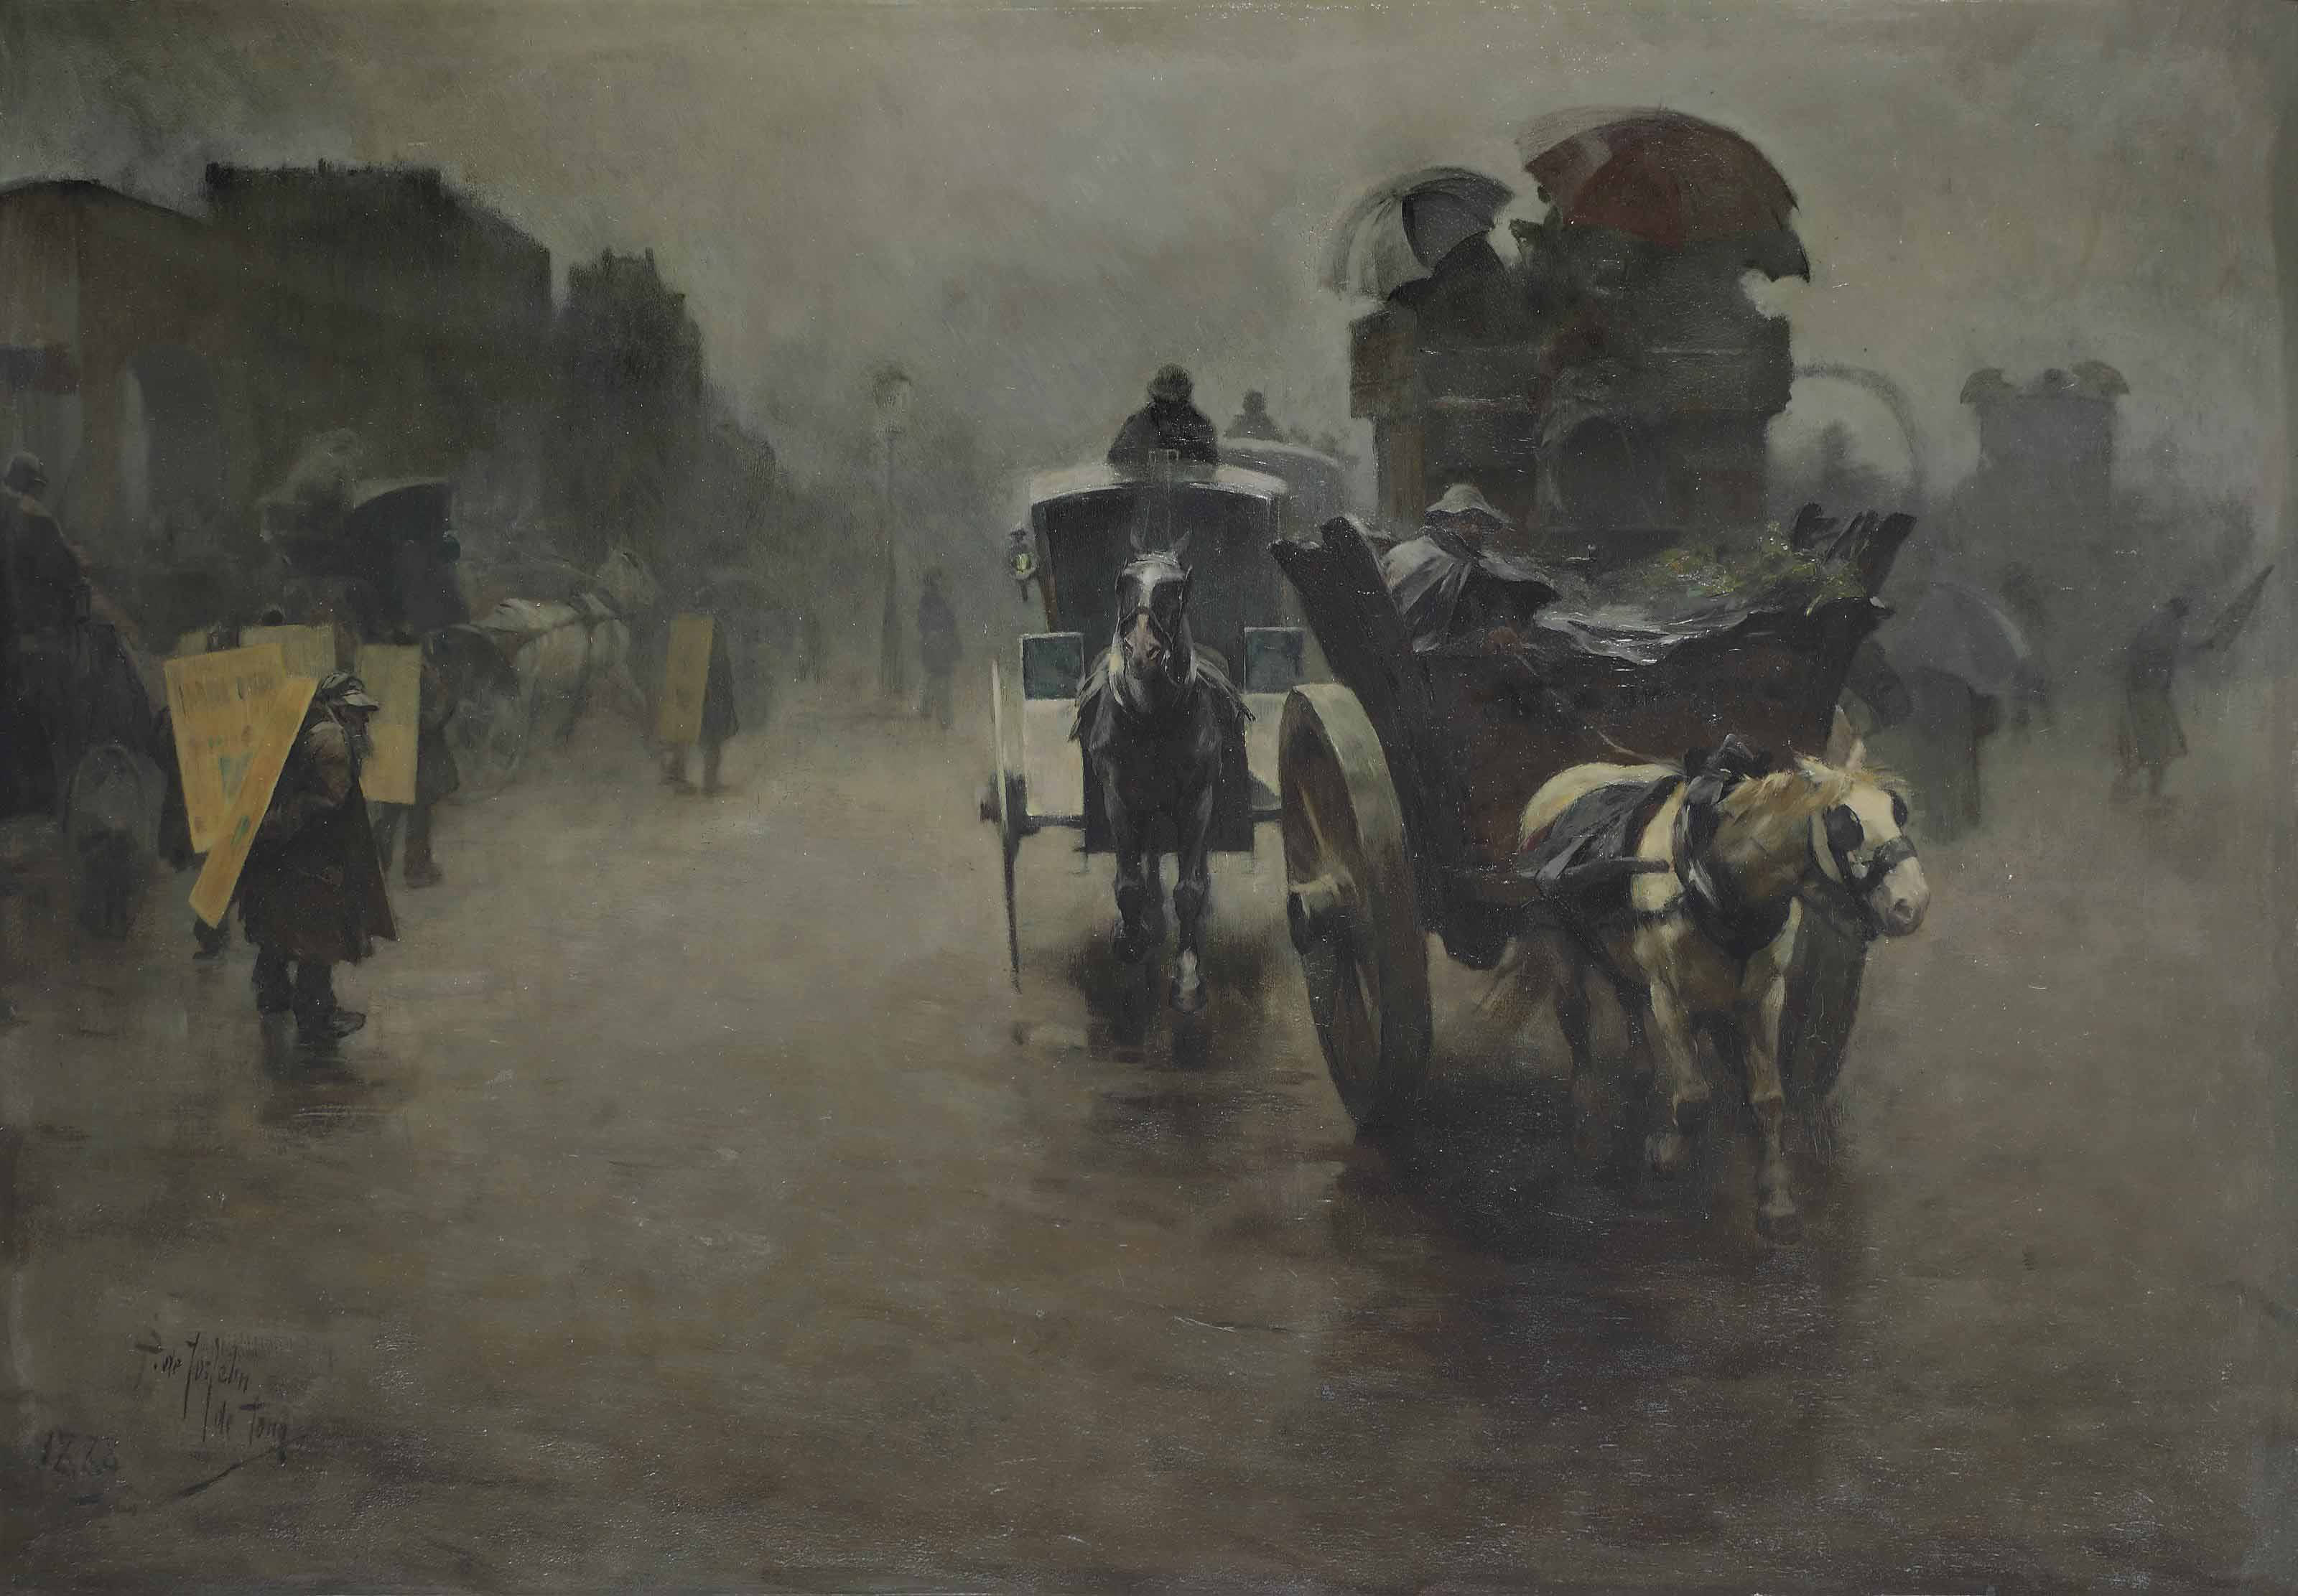 London: carriages in the mist, London